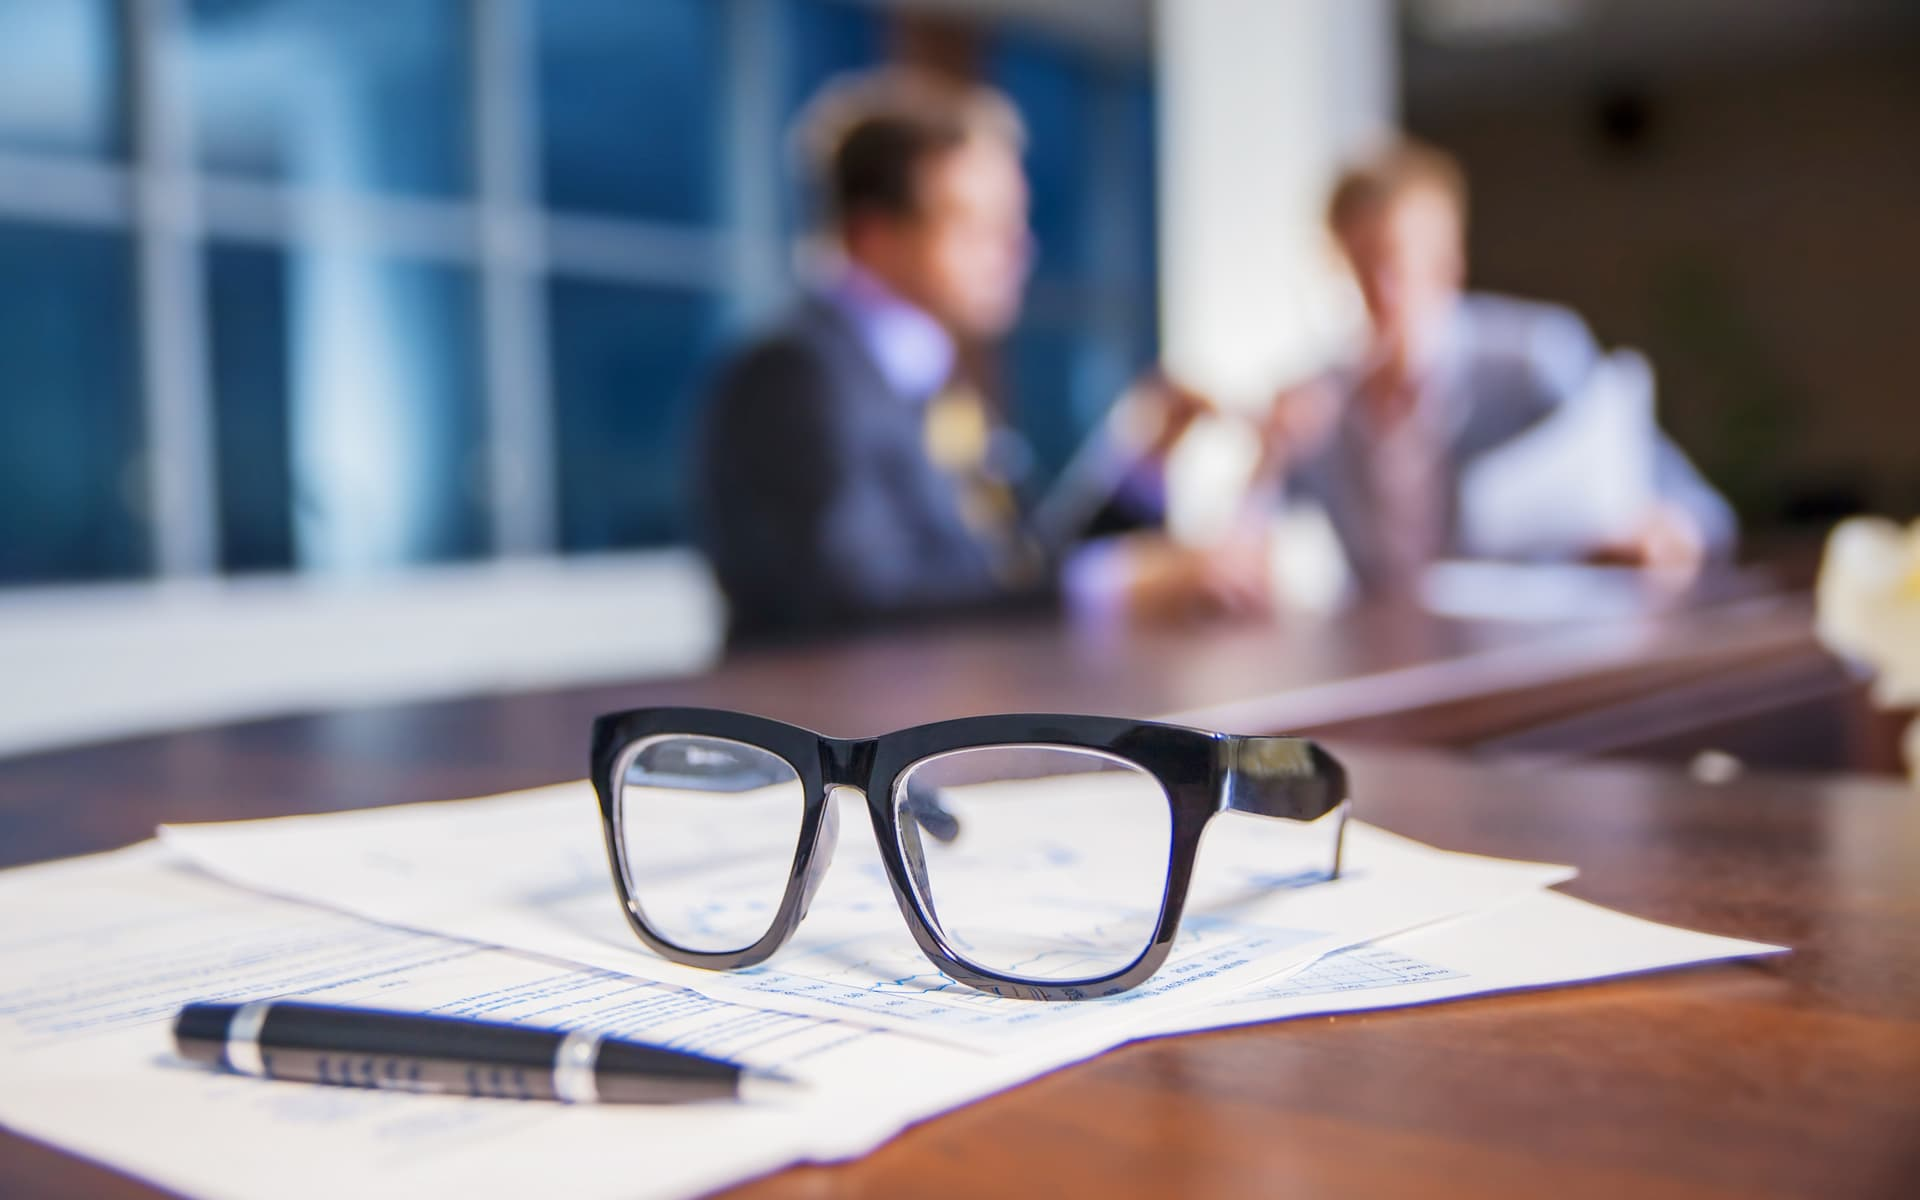 bpmn 2.0 modeling standard used to map business processes - glasses on the table